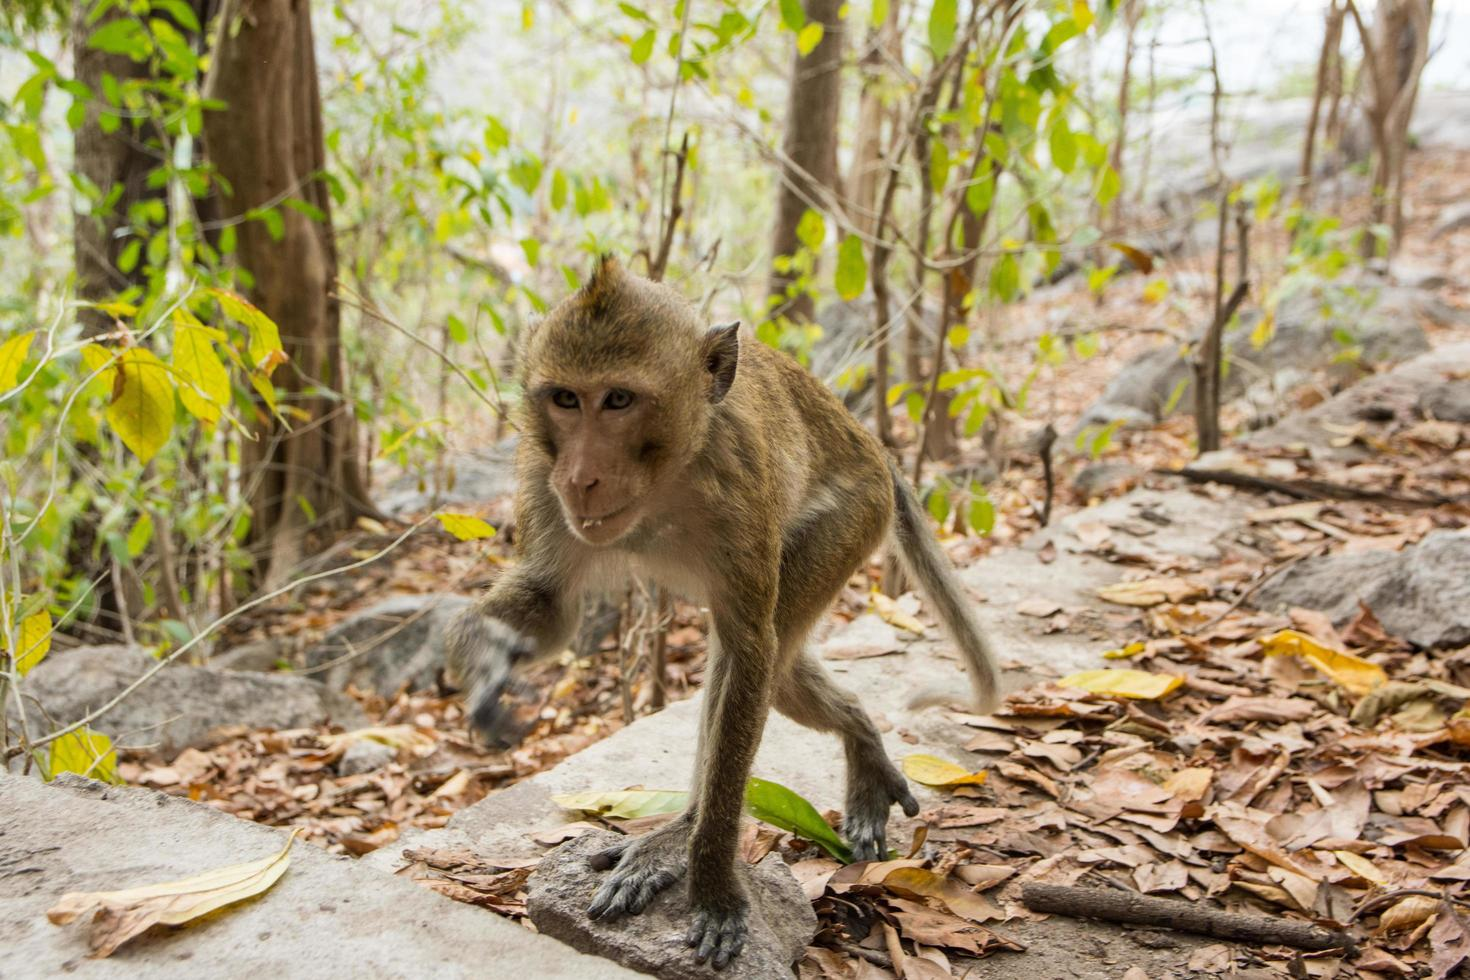 Monkey in the forest photo